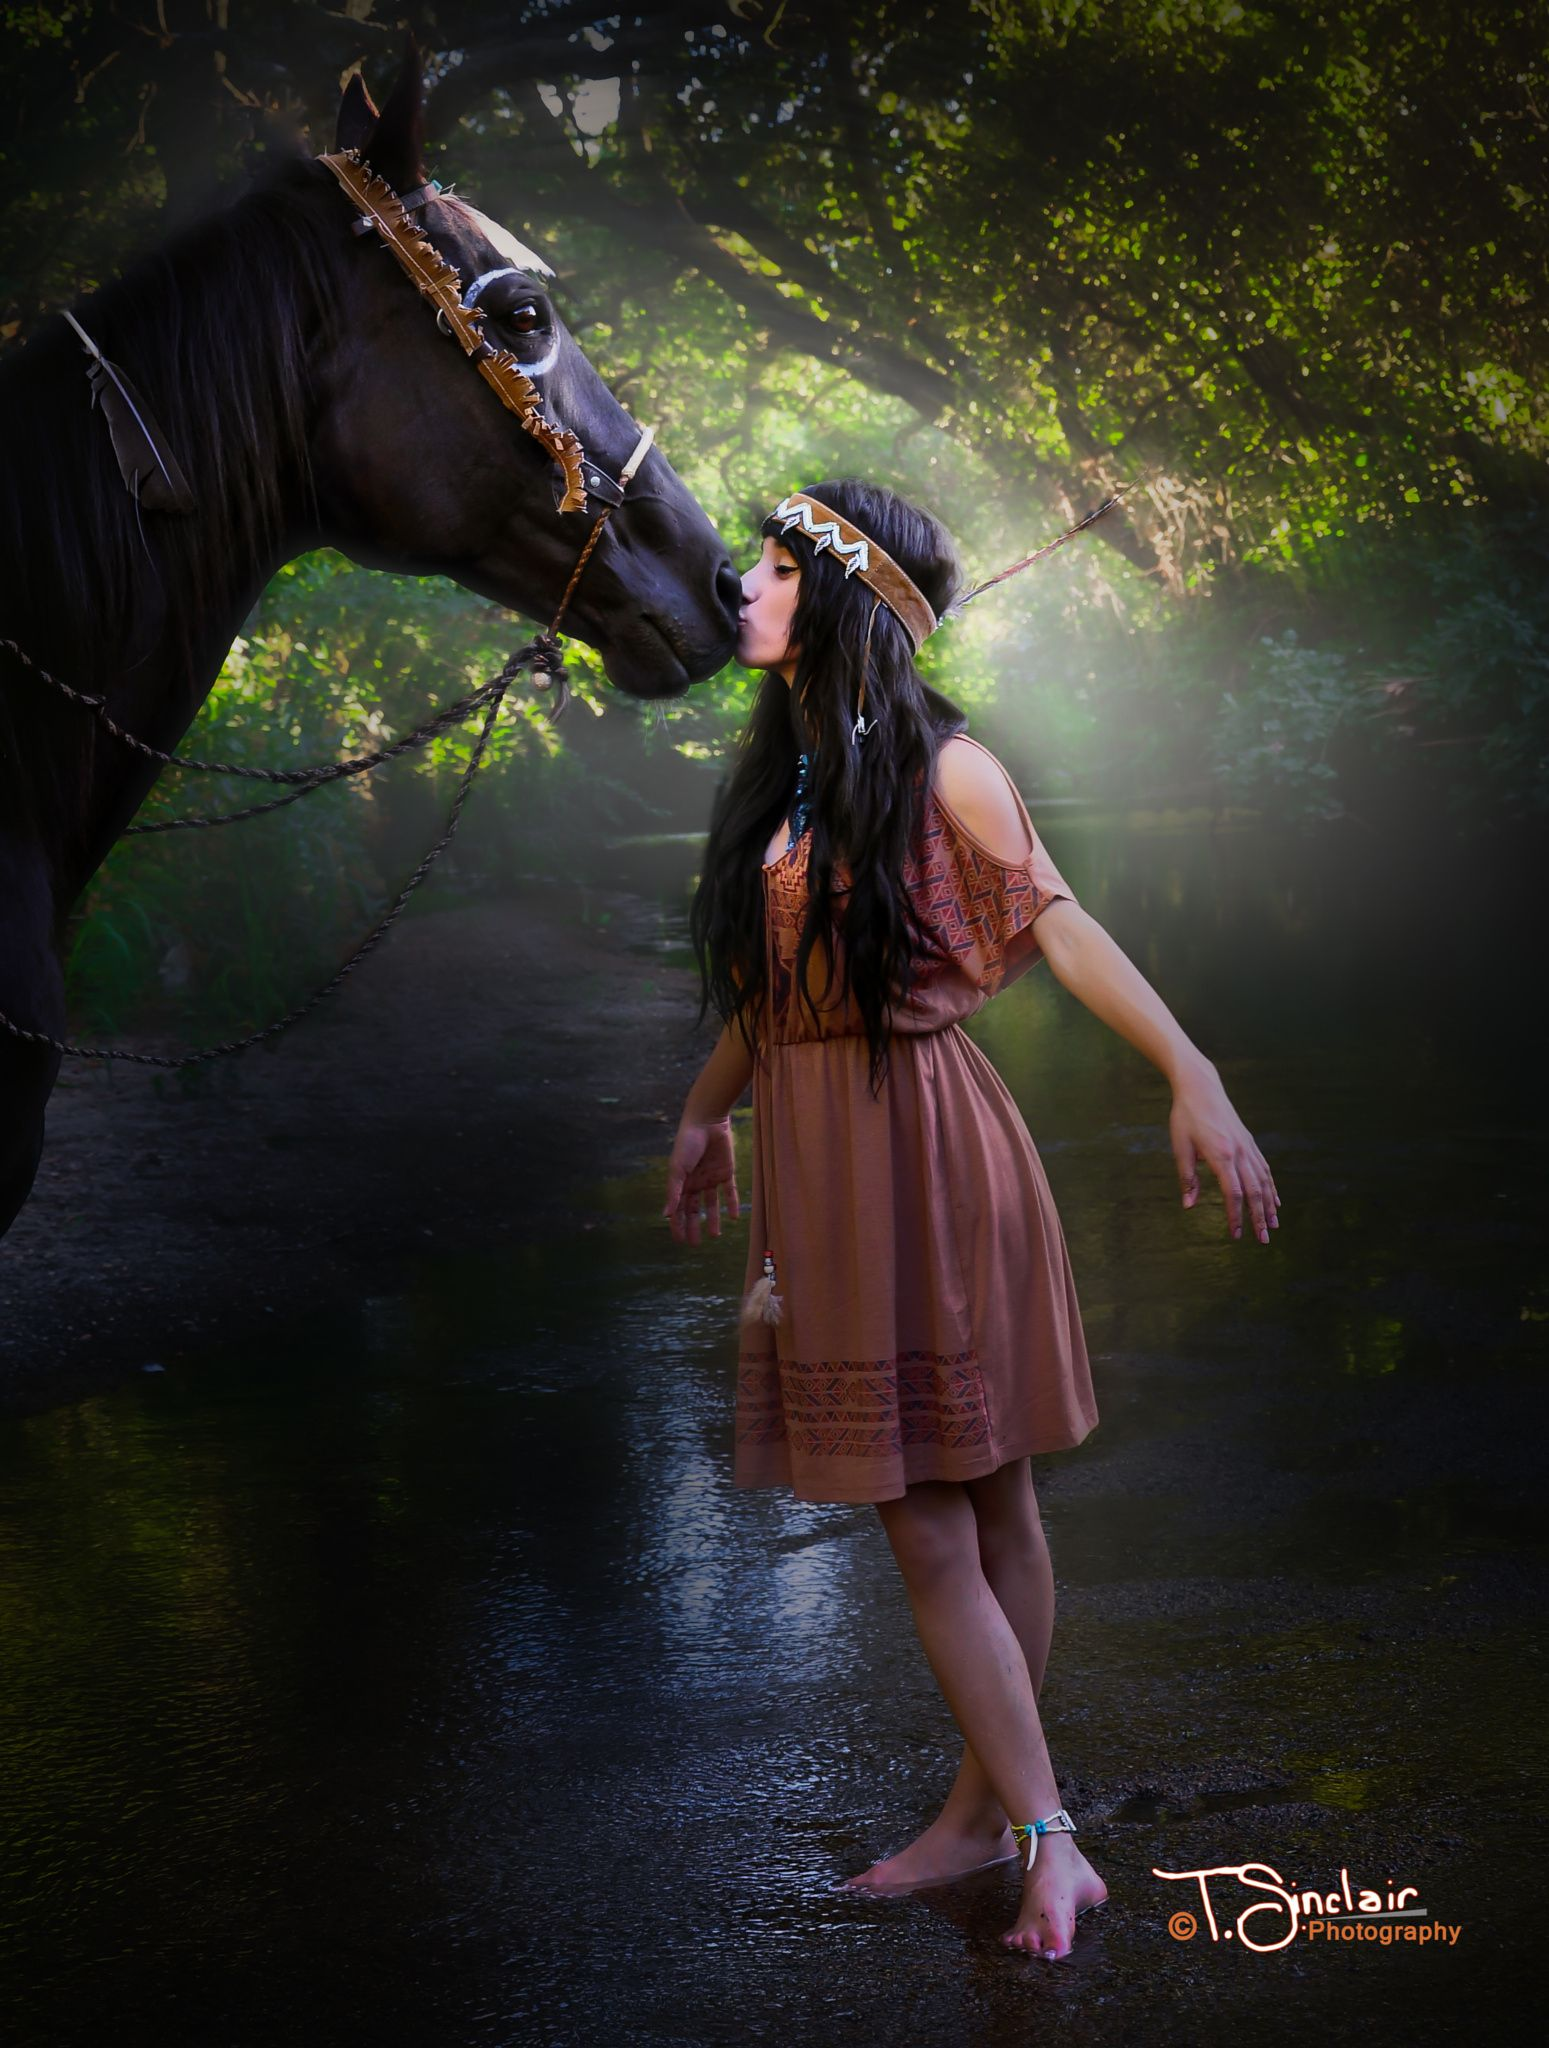 The Kiss Native American Girl Standing In A Creek Kissing Her